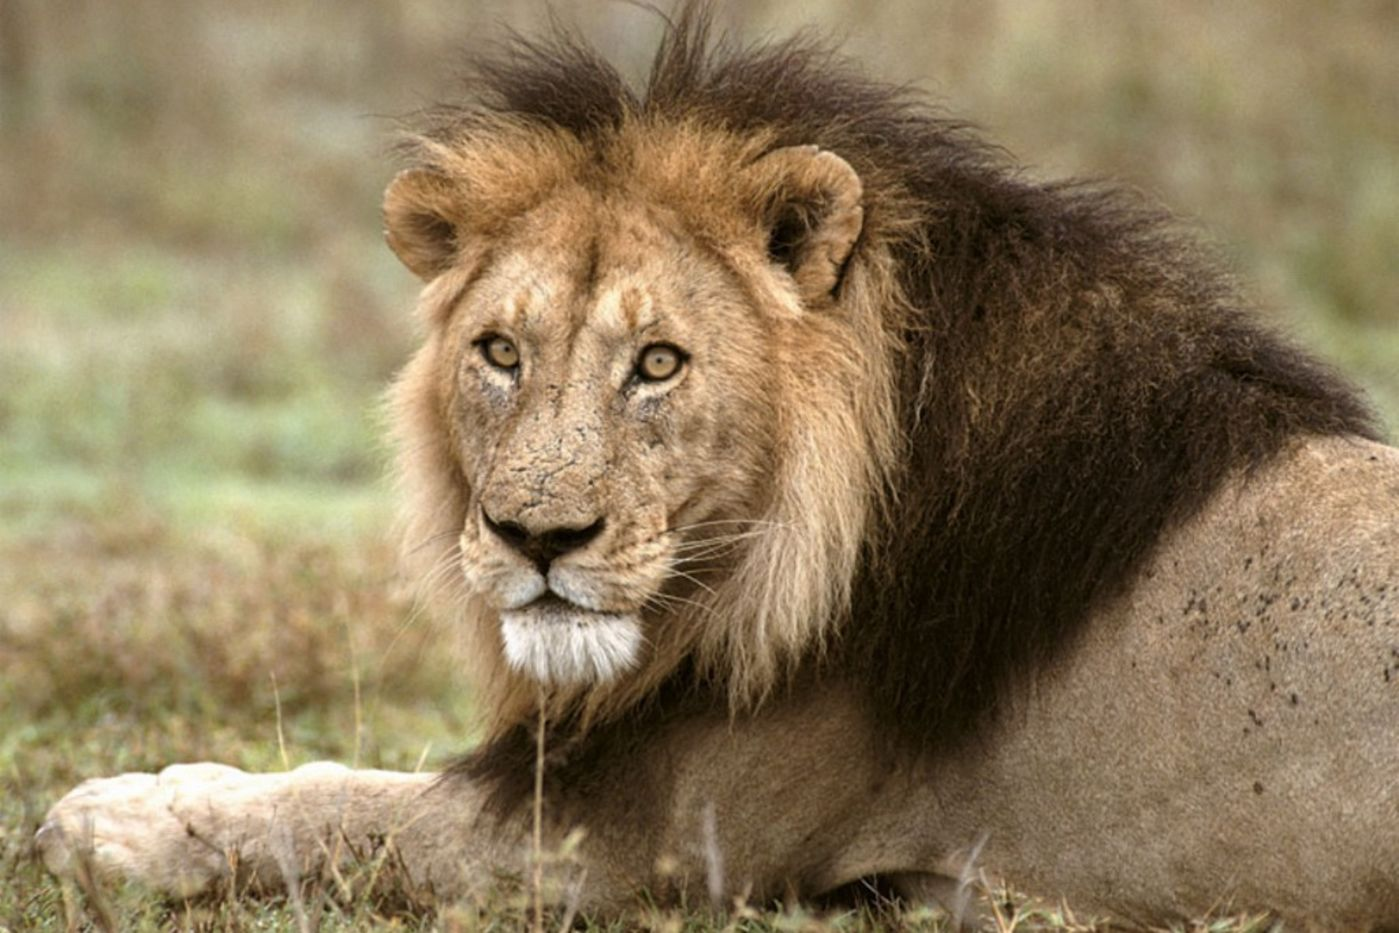 Sitting lion with a large mane.